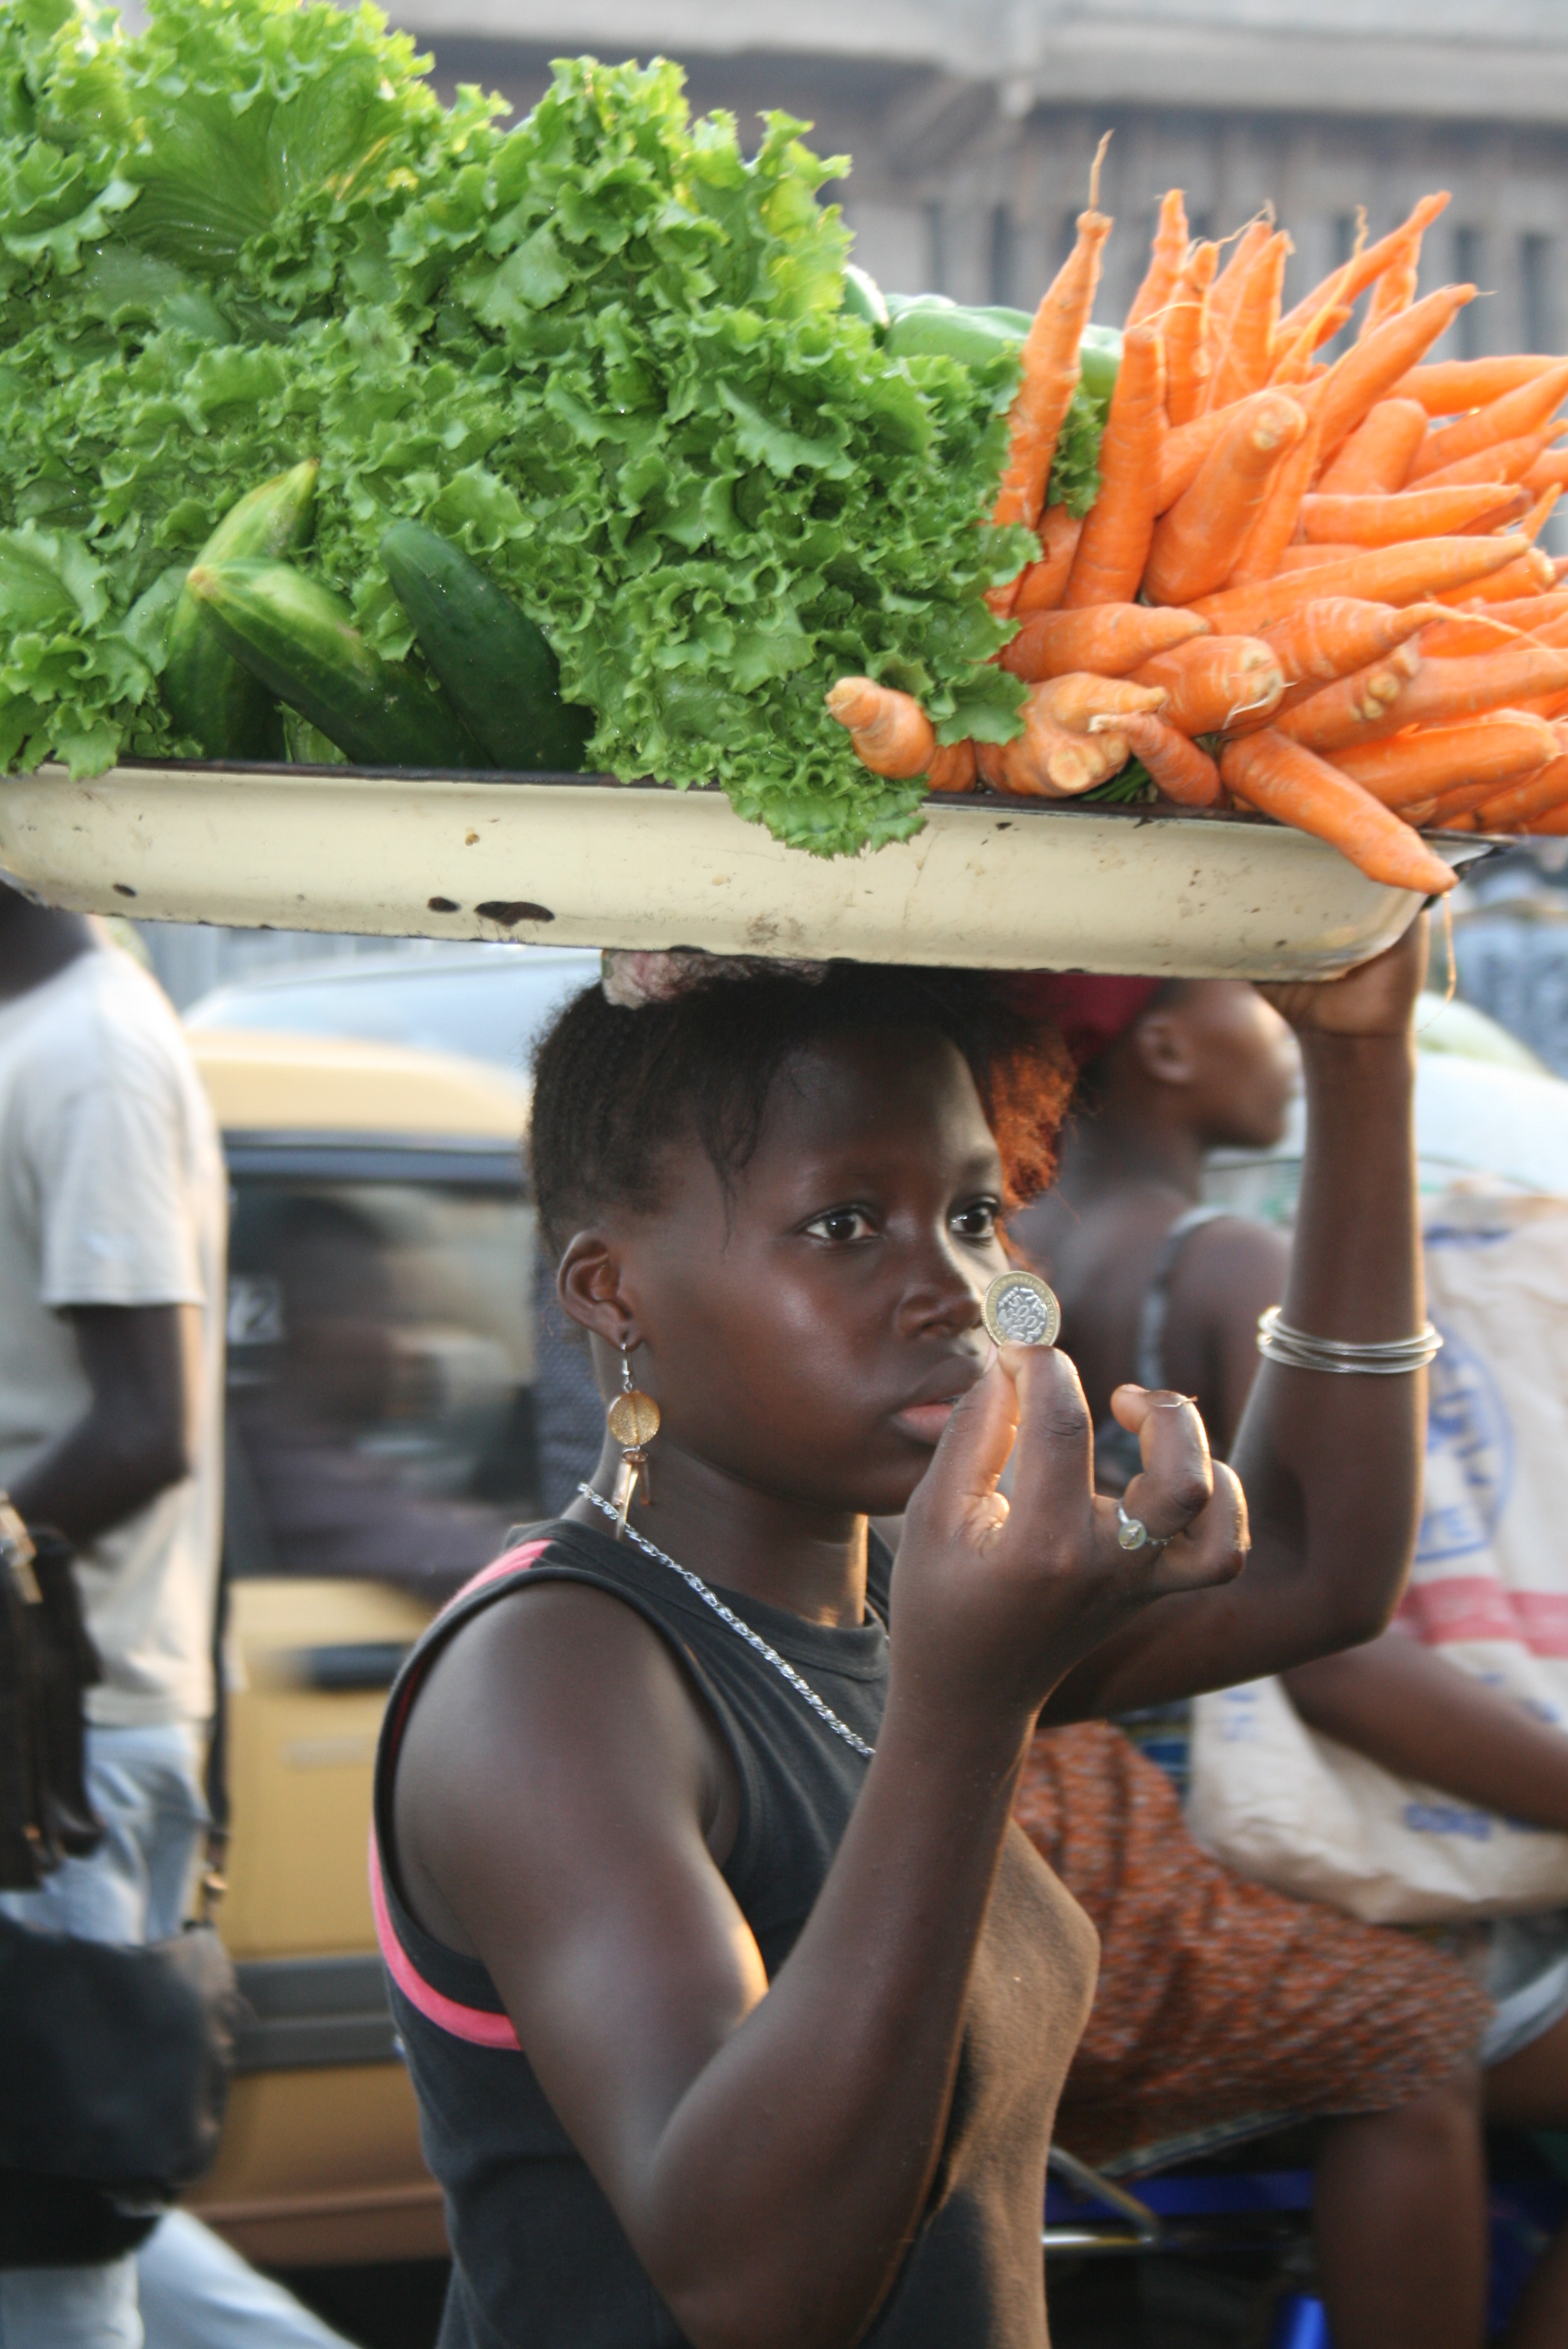 Young girl in Benin's largest market in Cotonou. Whether she is an economic migrant or victim of trafficking is central to a regional mobility study of children's migration in West Africa